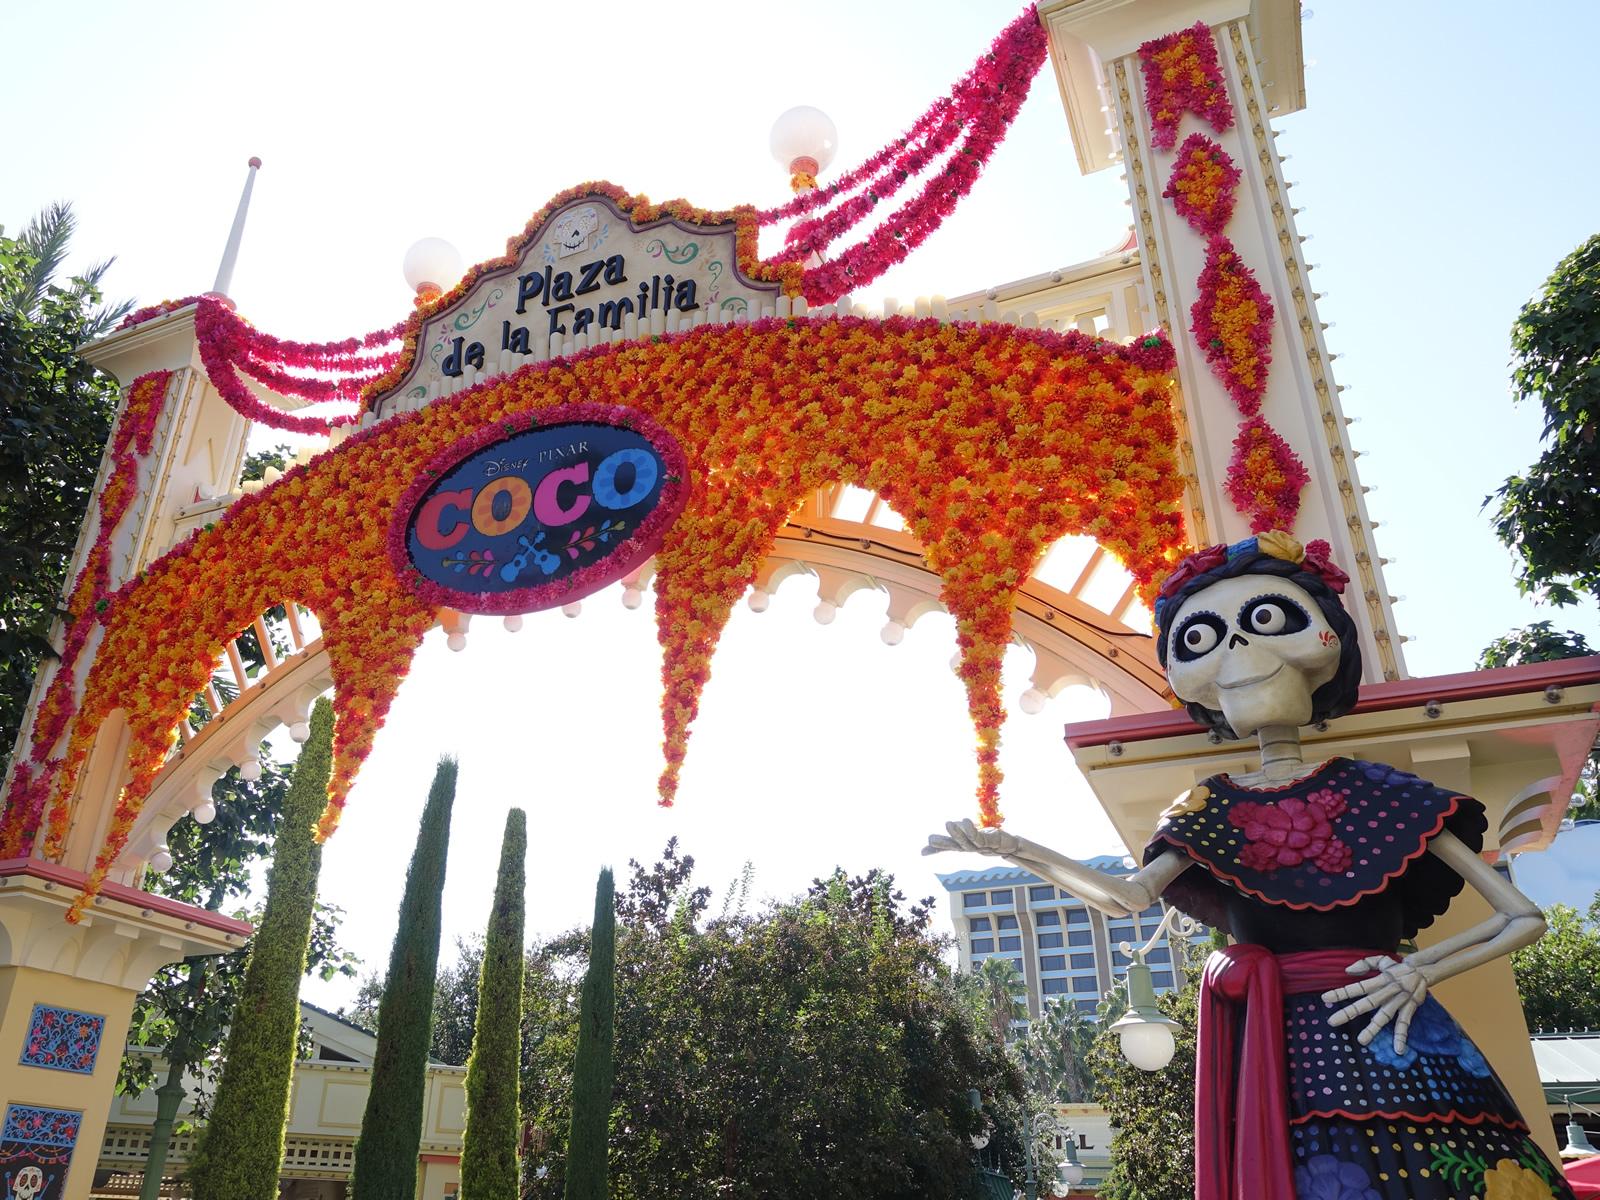 Mouseplanet disneyland resort update for october 2 8 2017 by a smiling calaca stands at the entrance to the plaza de la familia in disney california adventure photo by adrienne vincent phoenix publicscrutiny Choice Image